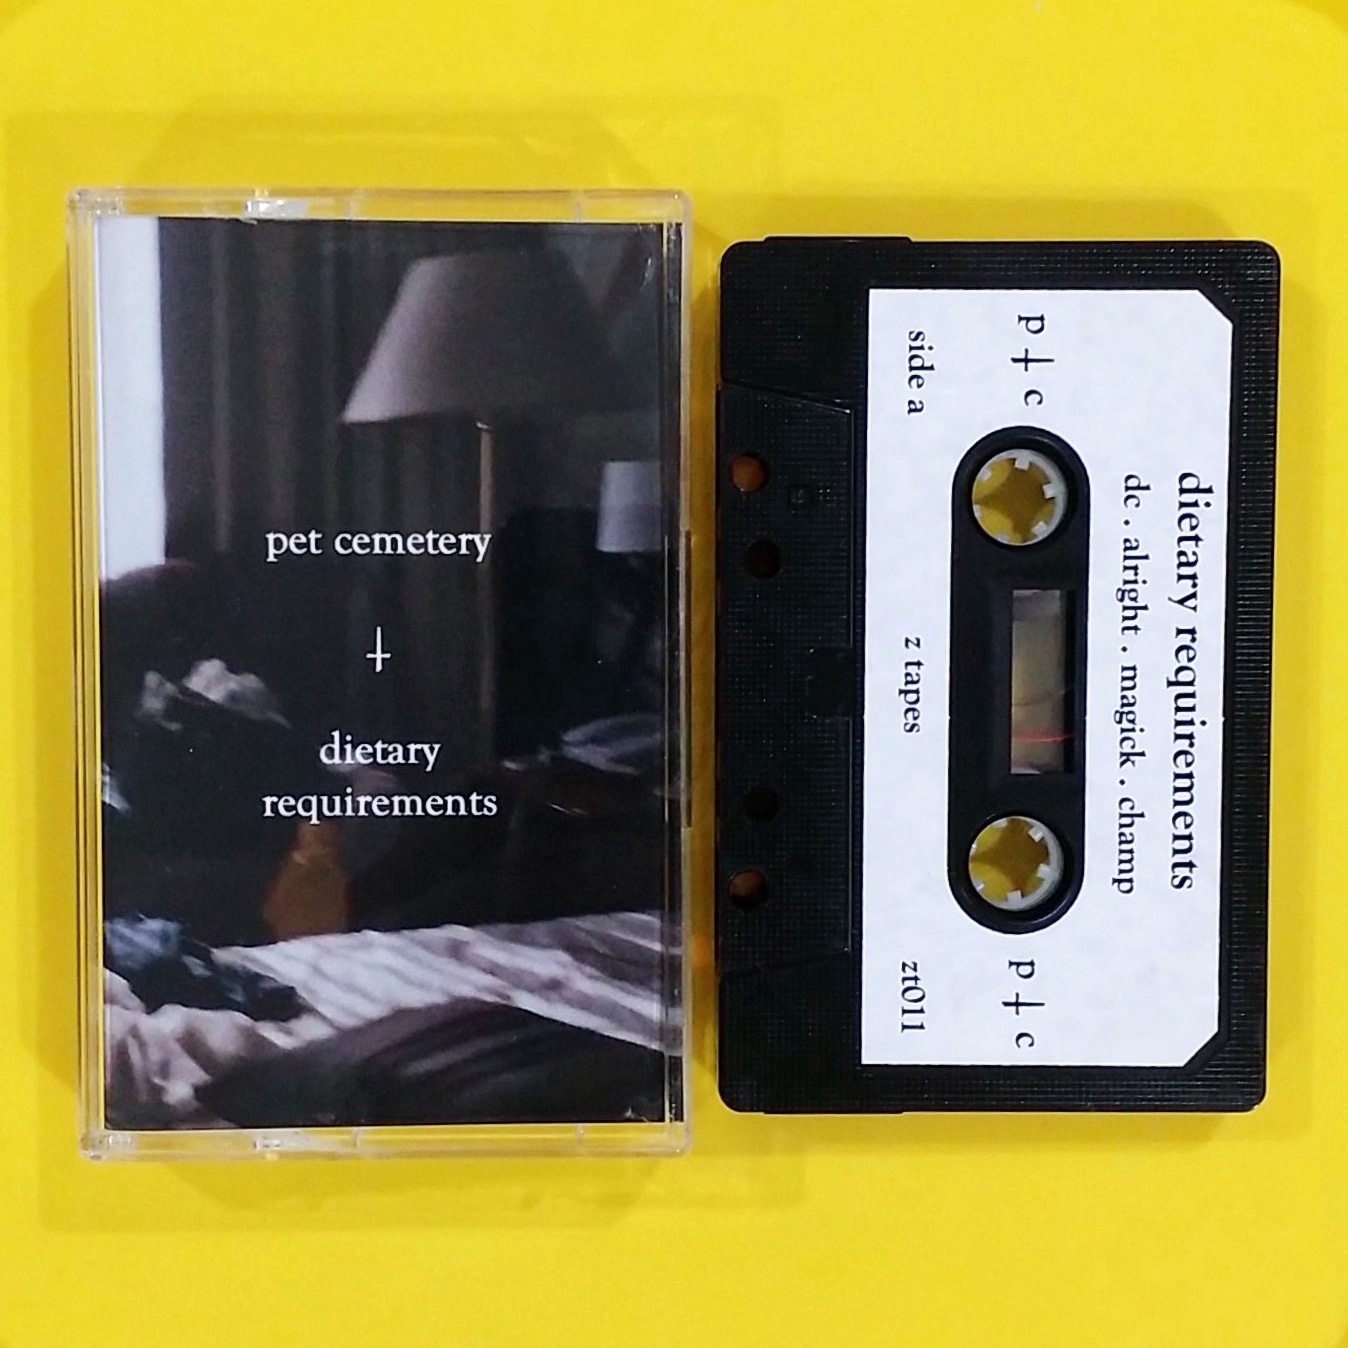 pet cemetery - dietary requirements ep (Z Tapes)